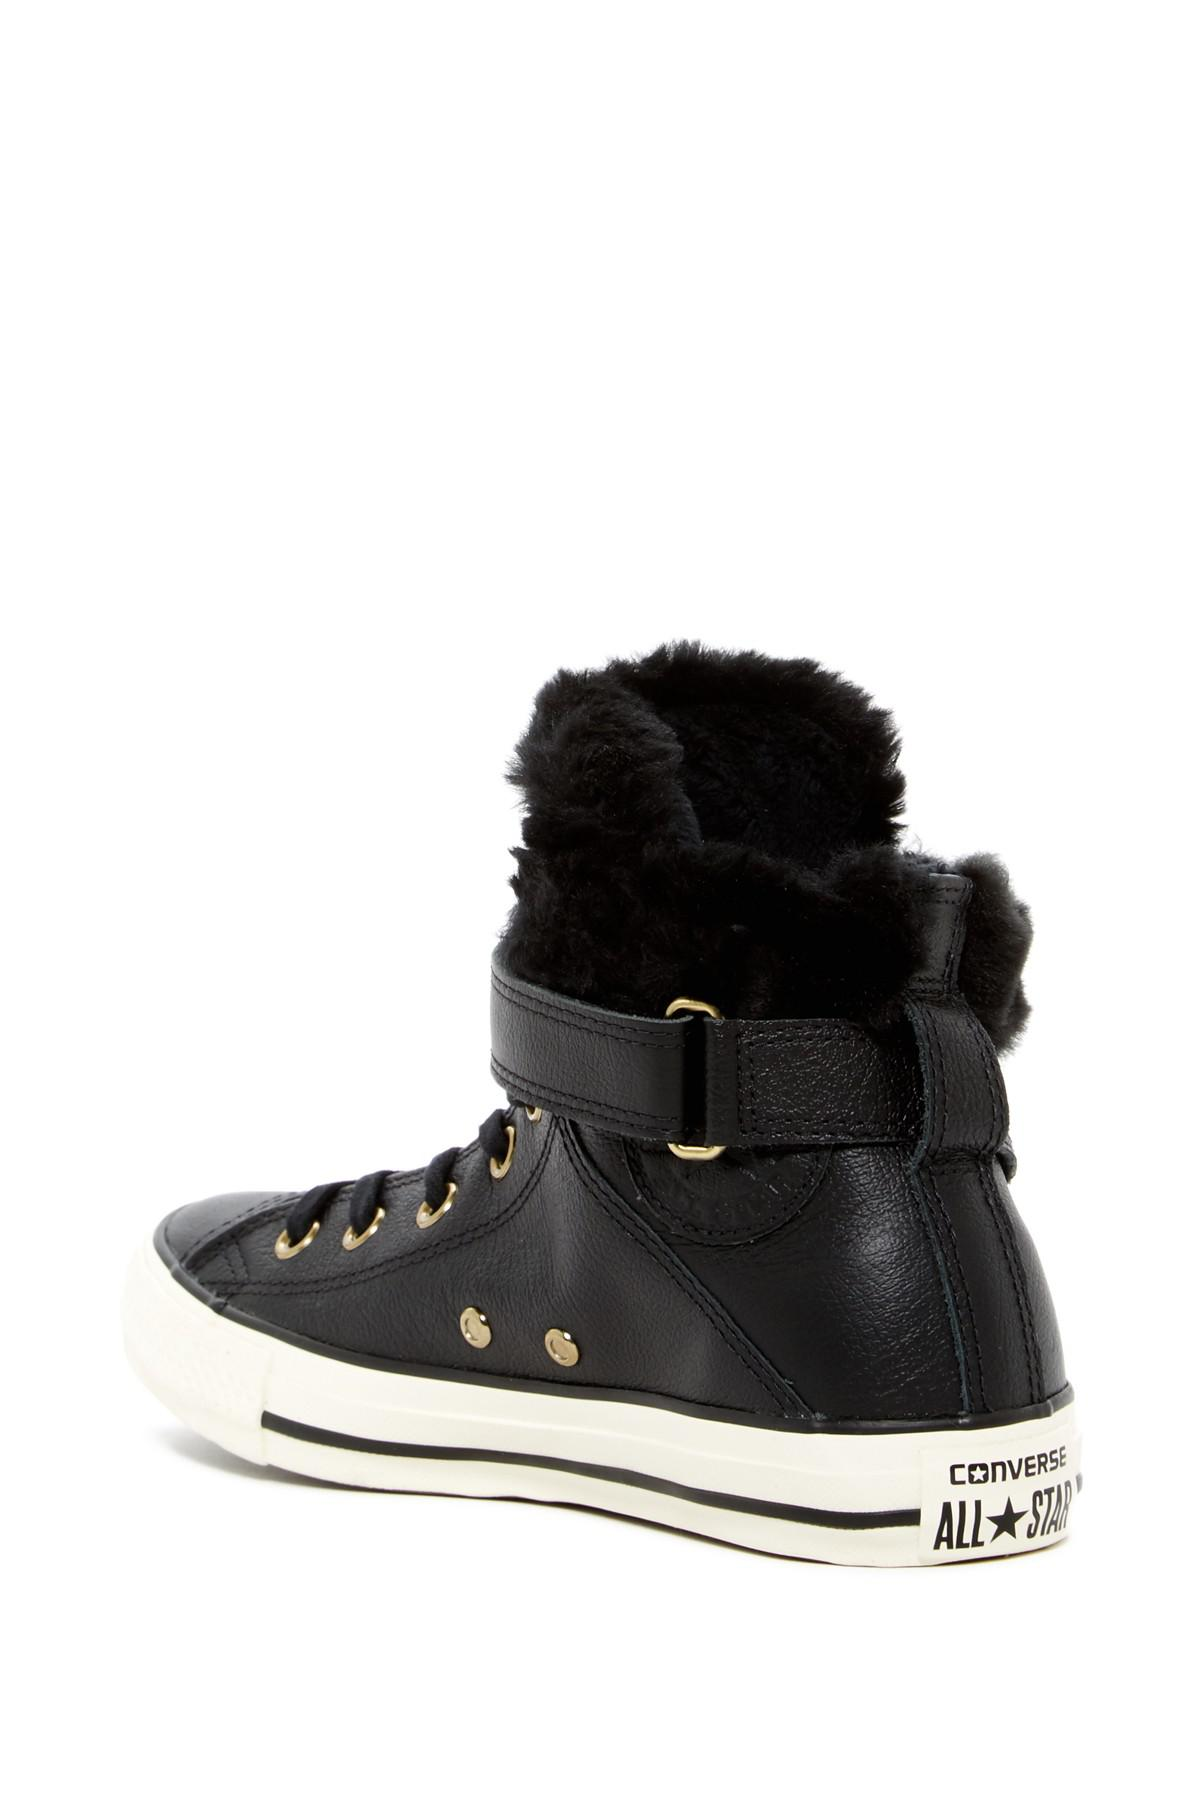 a7bffd89f895 Lyst - Converse Chuck Taylor All Star Faux Fur Lined Leather High ...